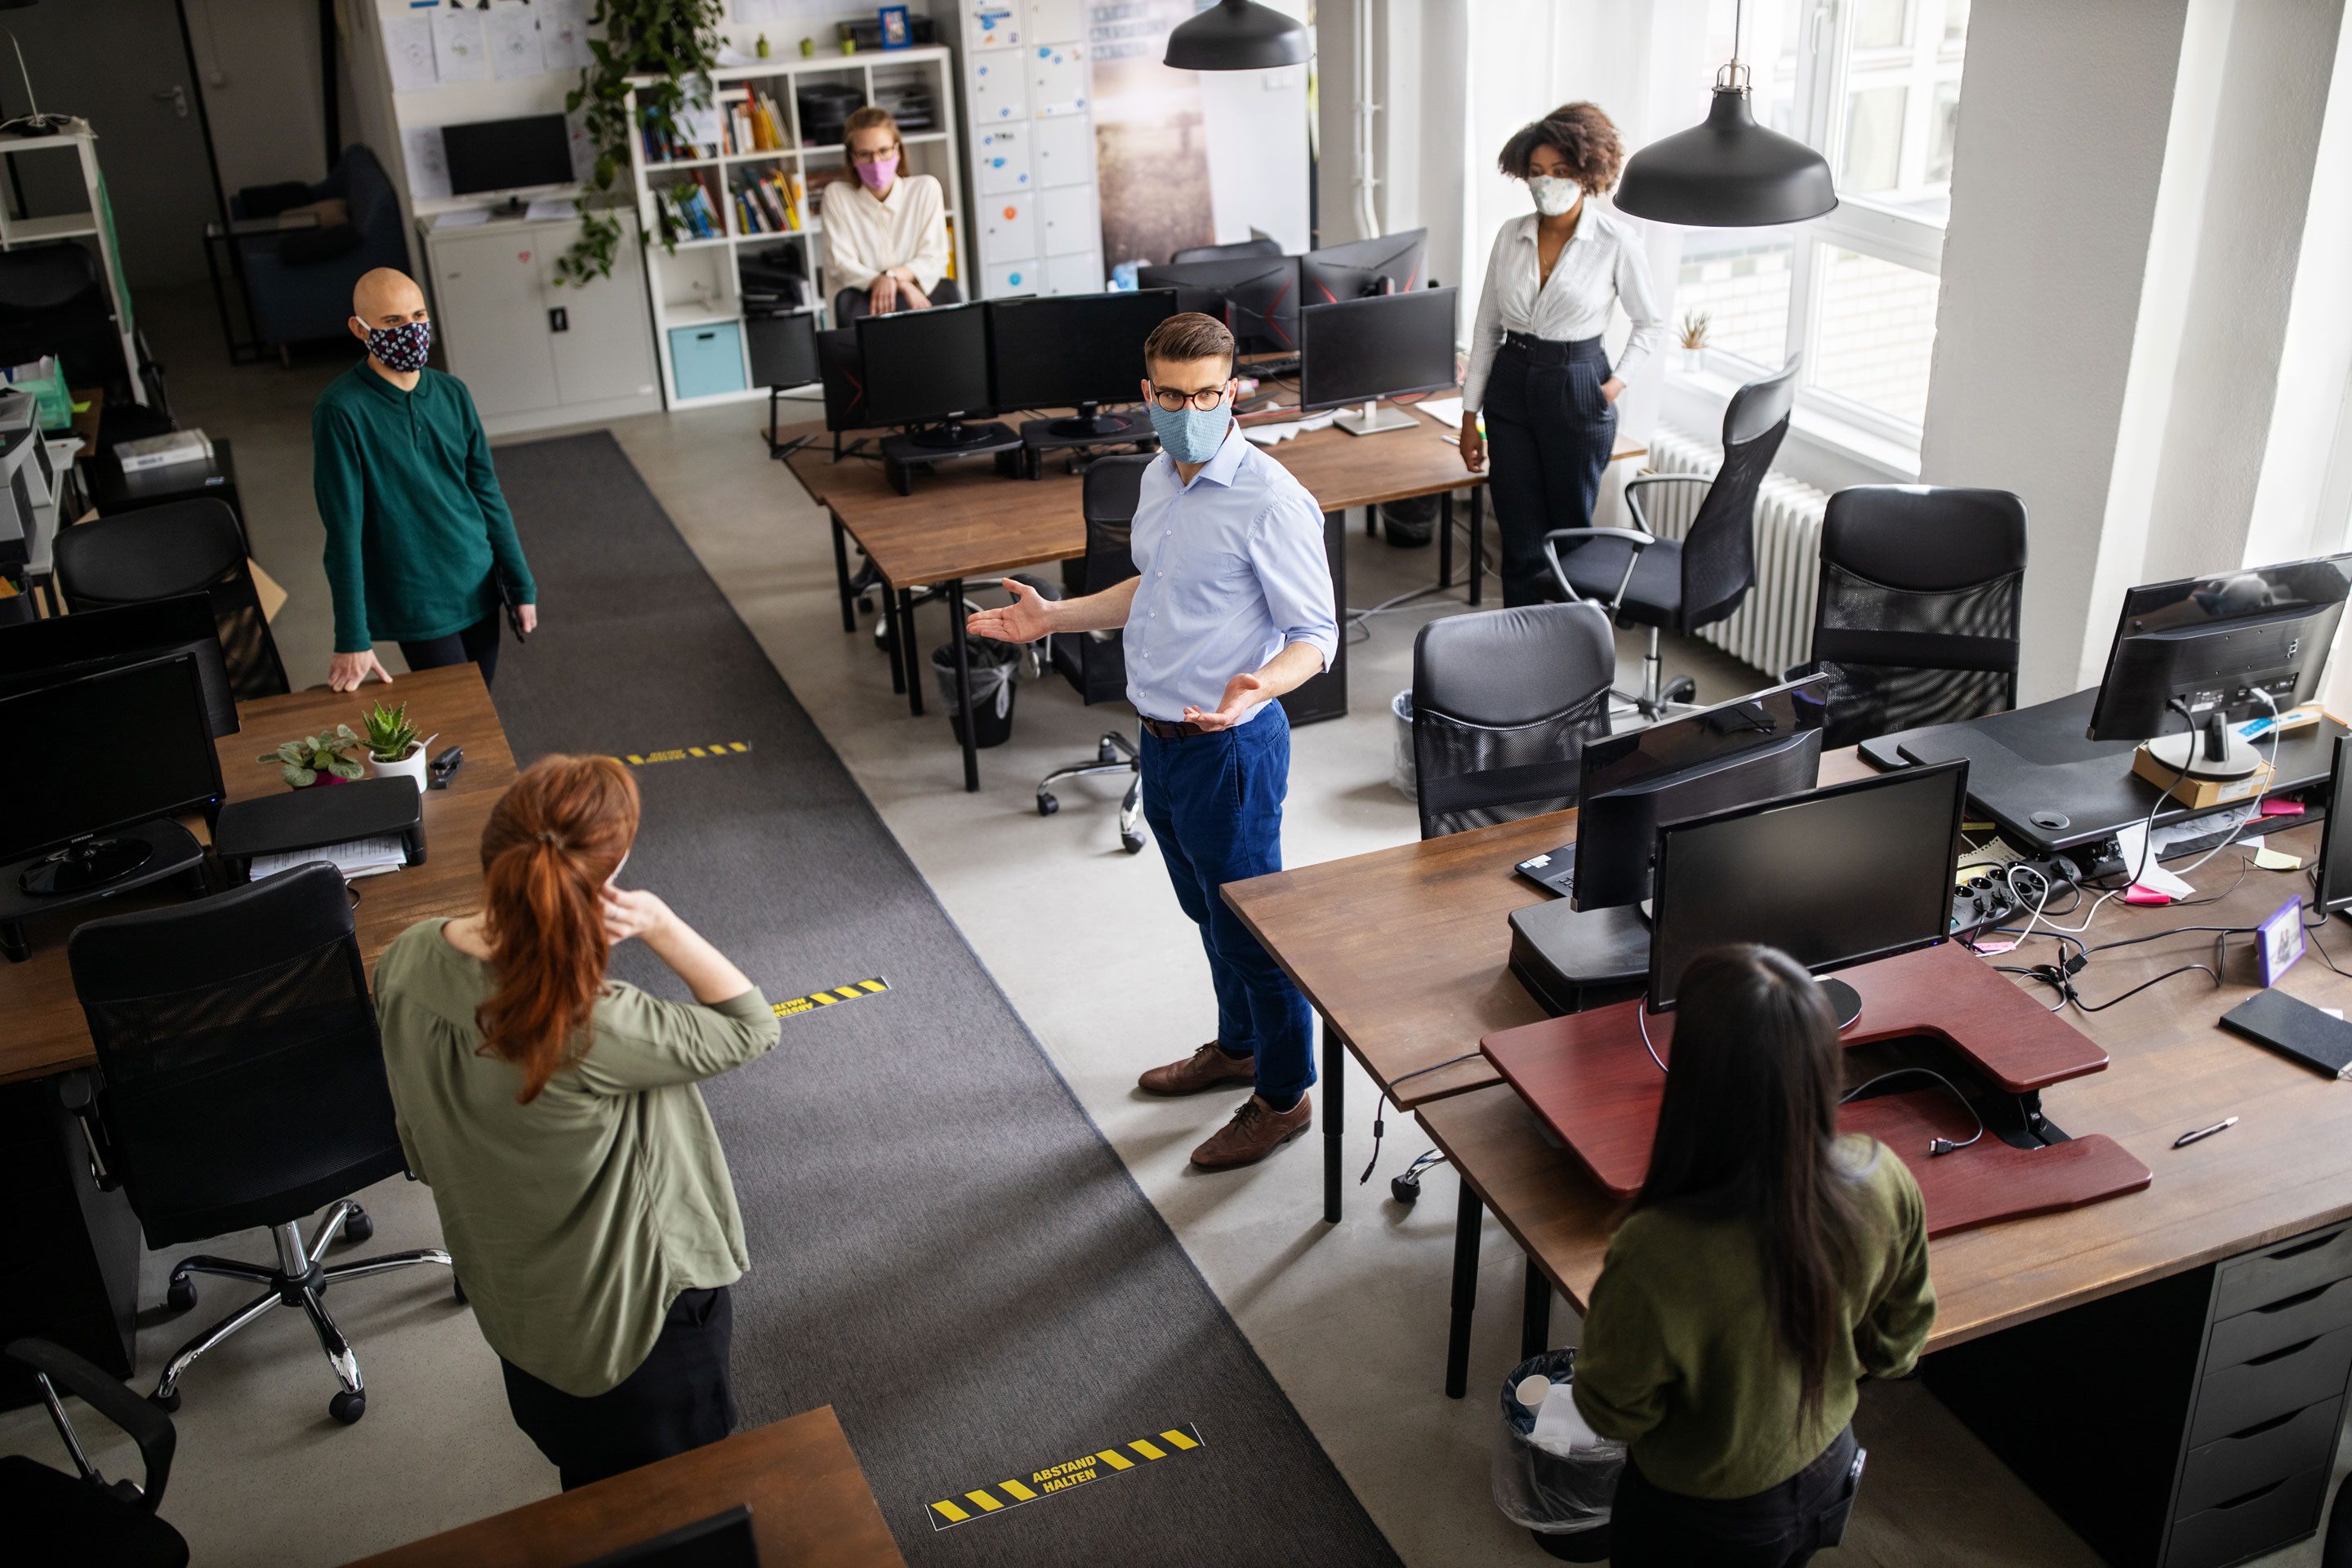 Return to work: Steps to prepare for the post-COVID office | Fortune